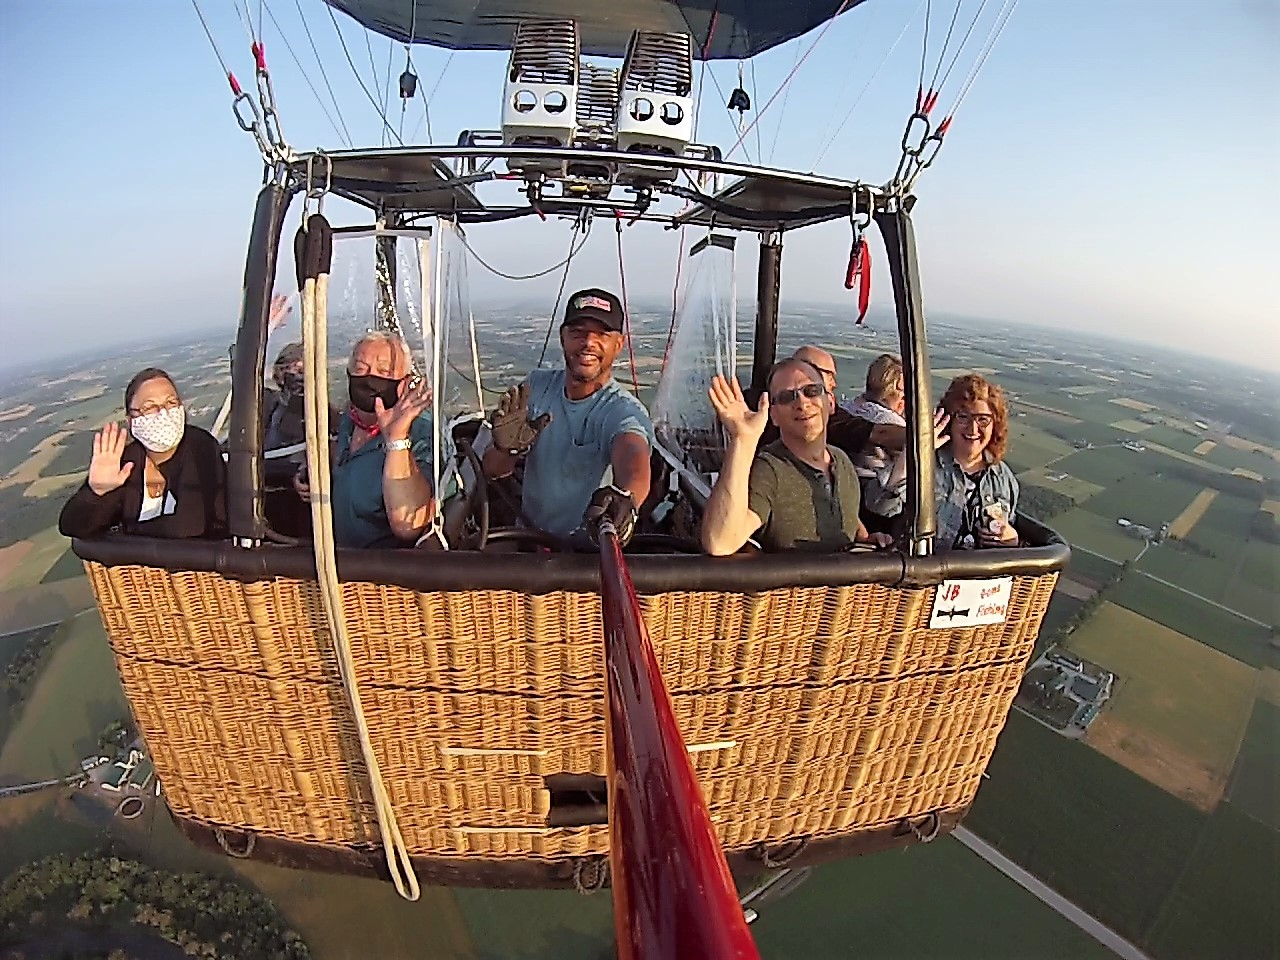 hot-air-balloon-adventure-in-kitchener-ontario